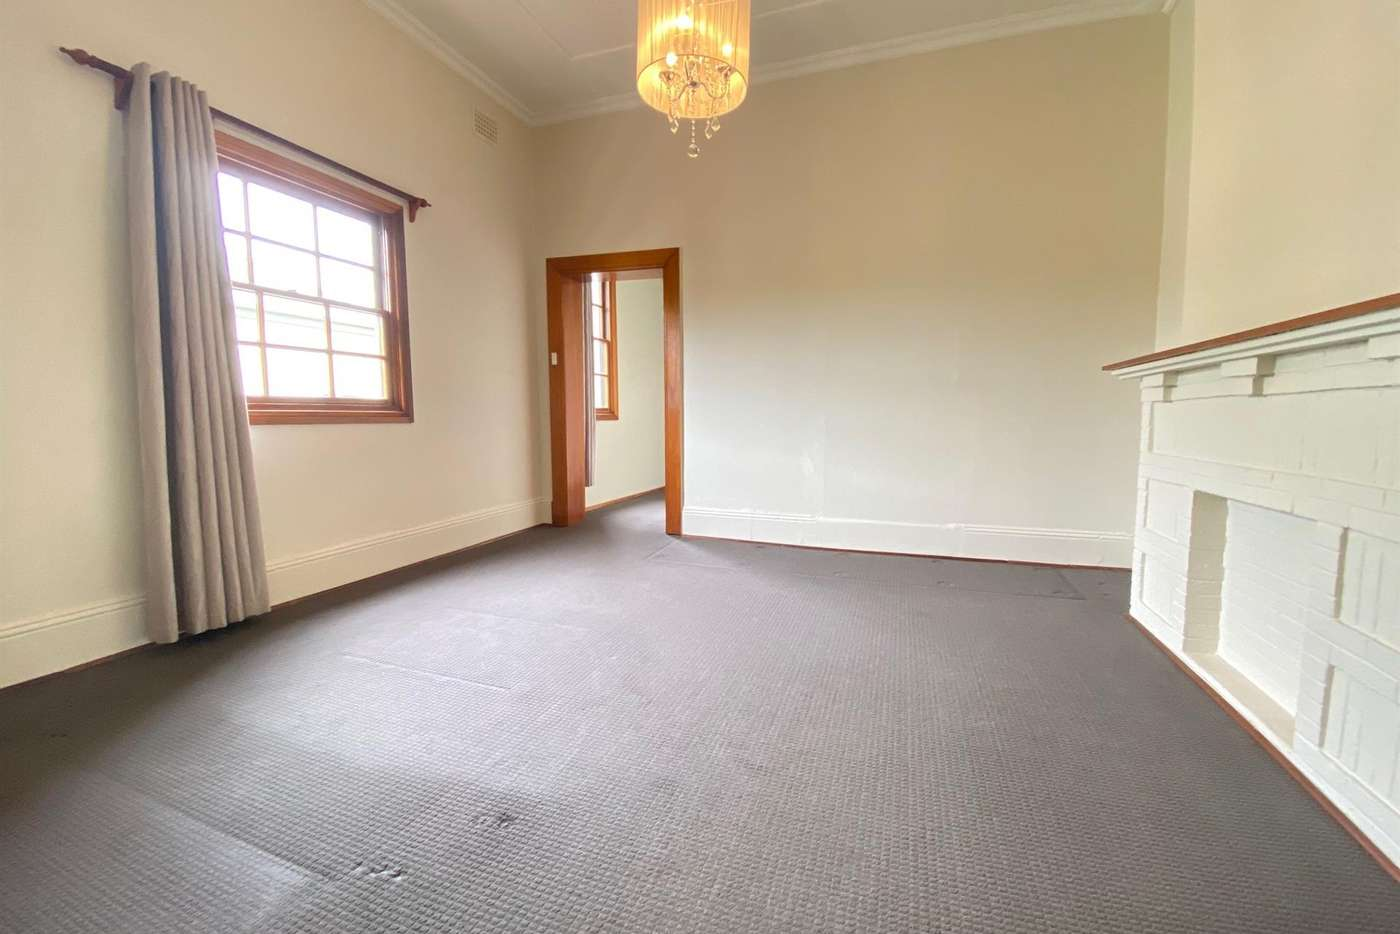 Sixth view of Homely apartment listing, 2/48 Womerah Avenue, Darlinghurst NSW 2010